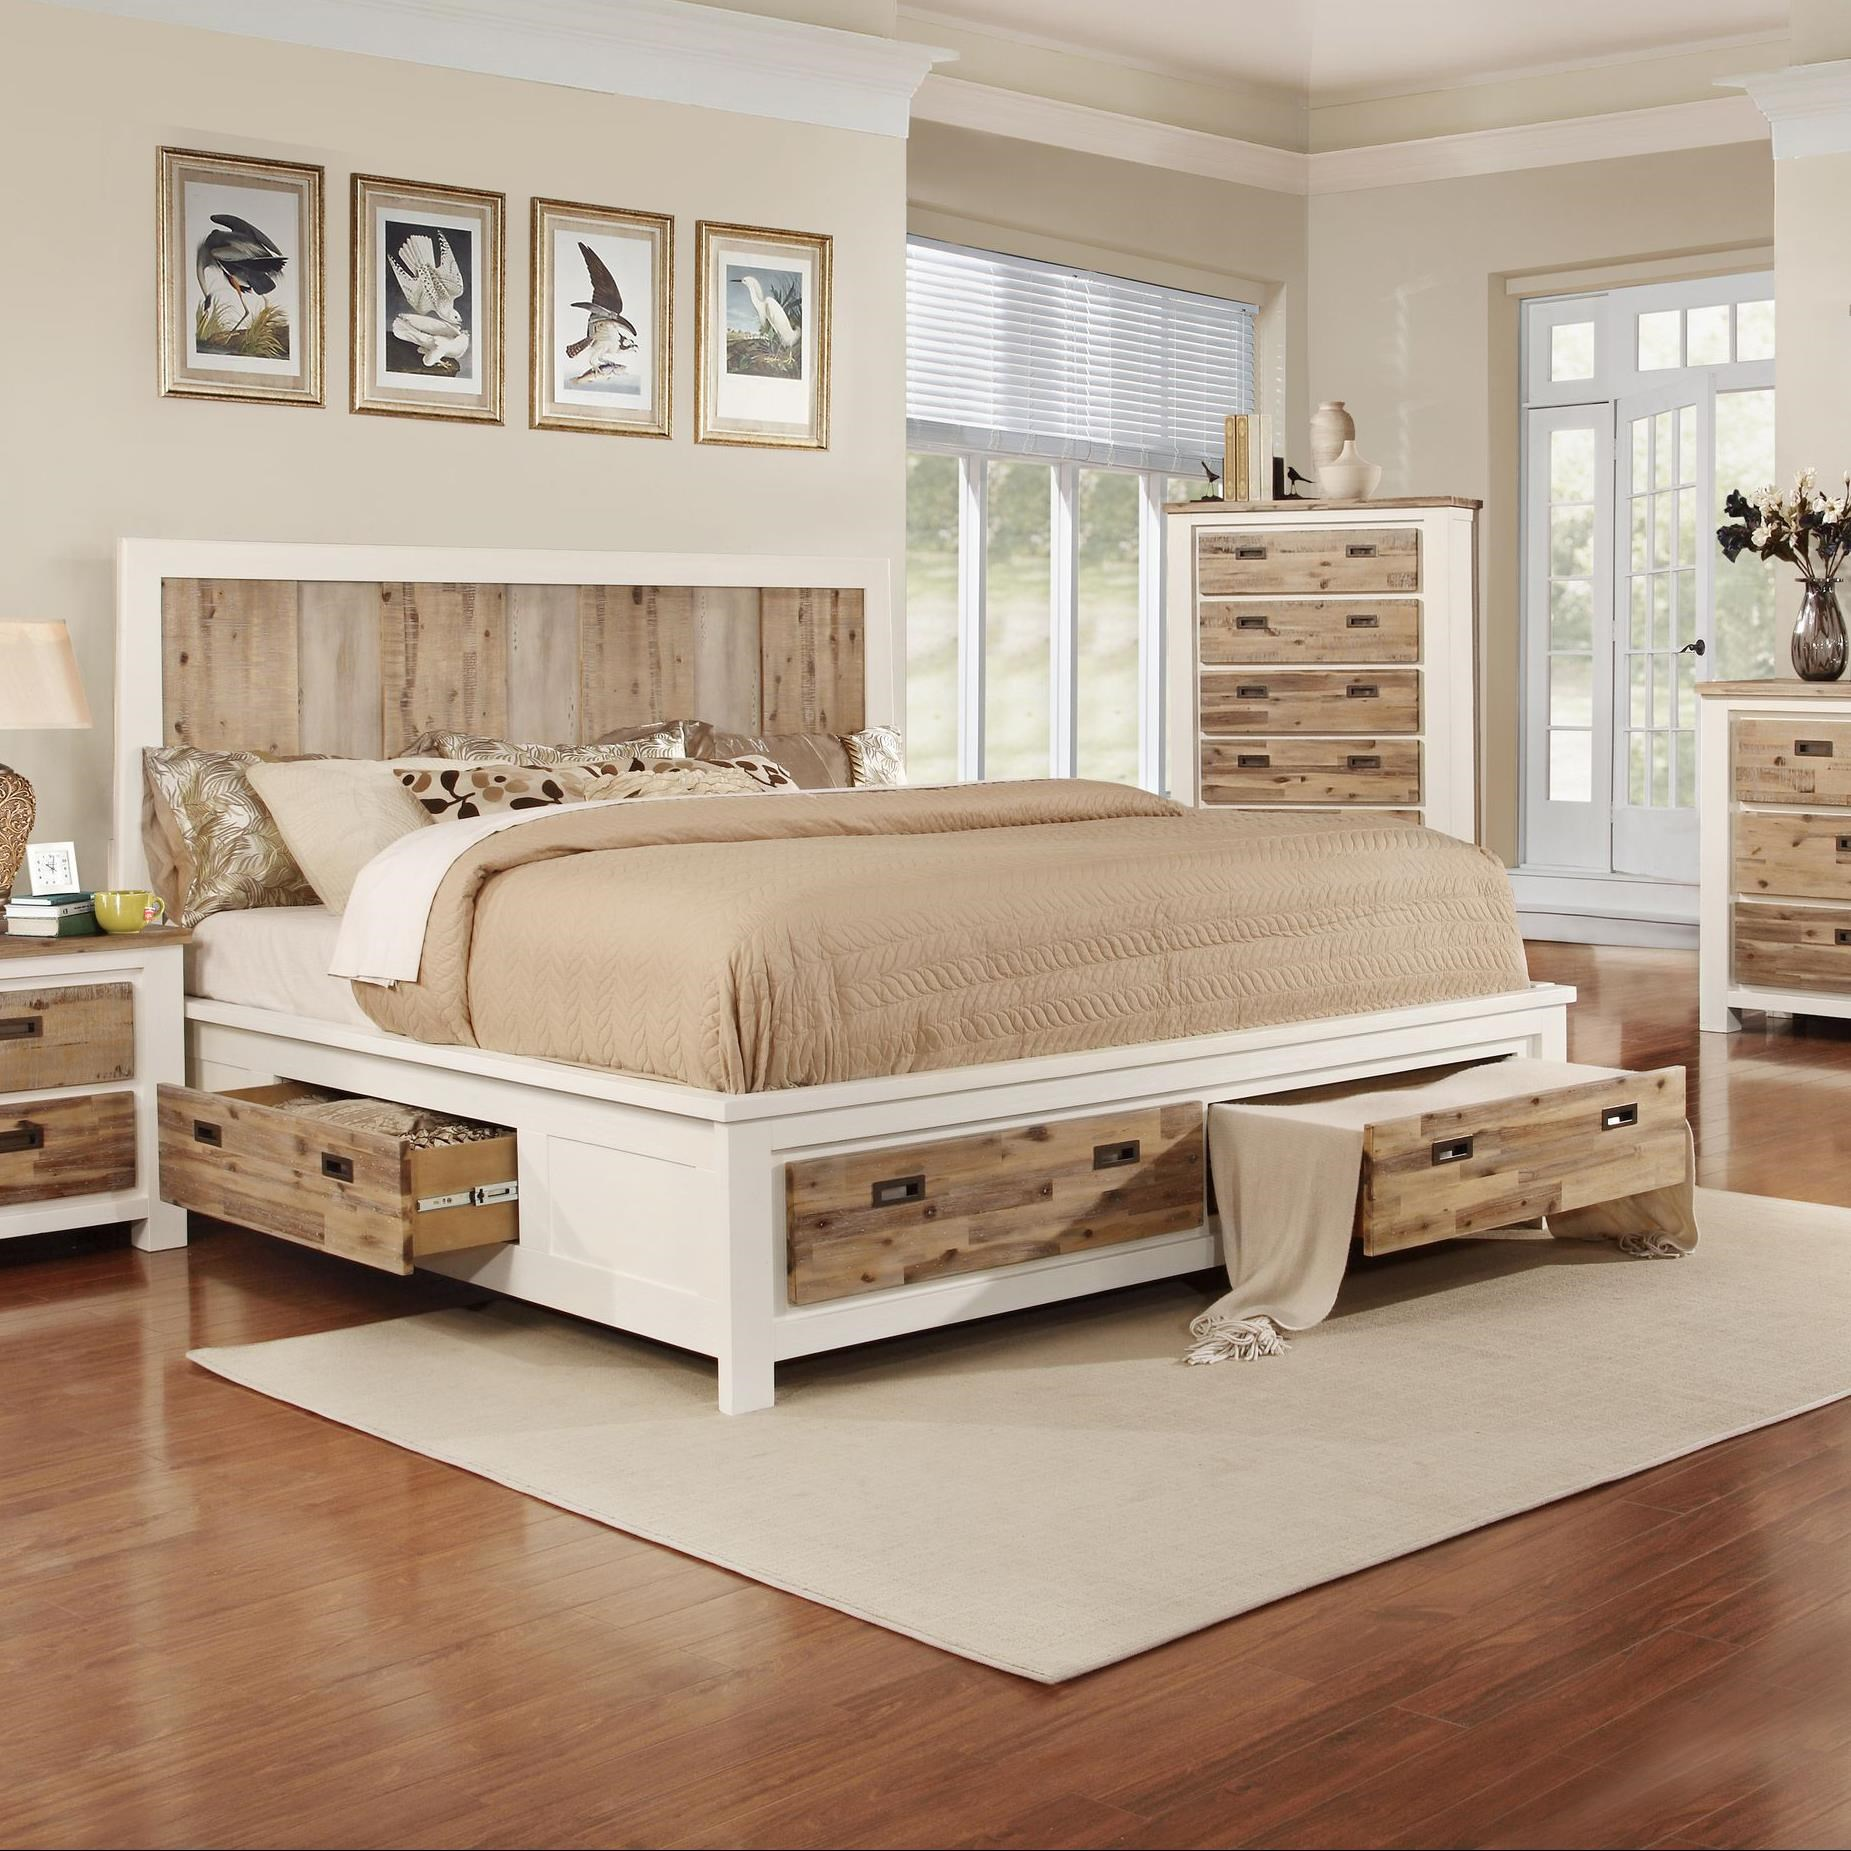 Lifestyle TommyKing Storage Bed